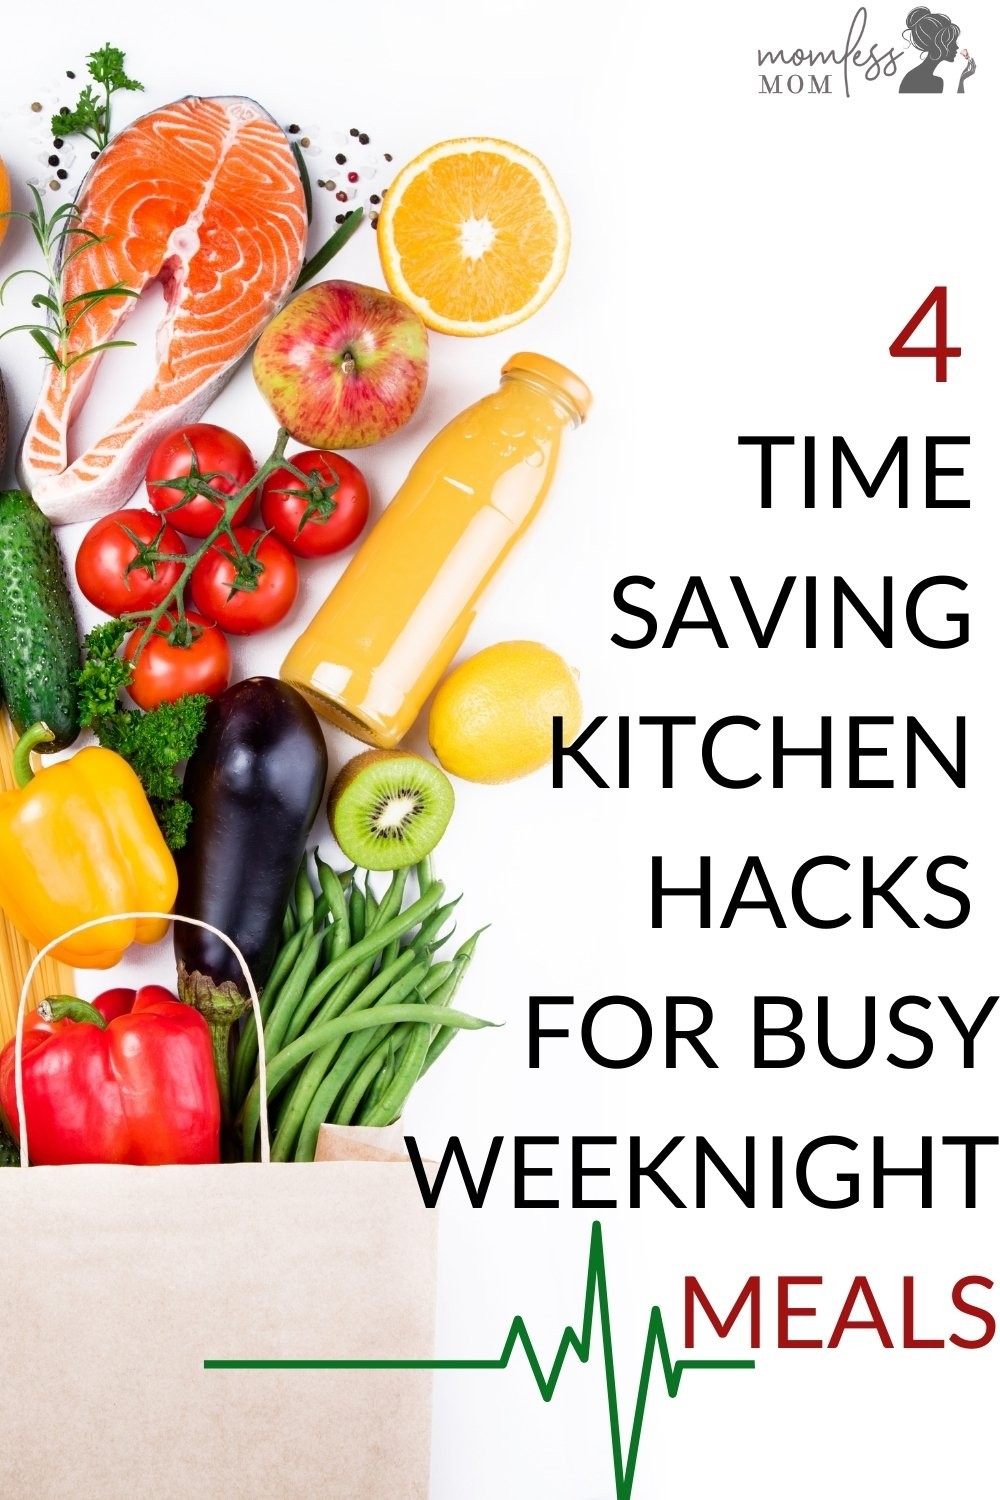 4 Time Saving Kitchen Hacks for Busy Weeknights